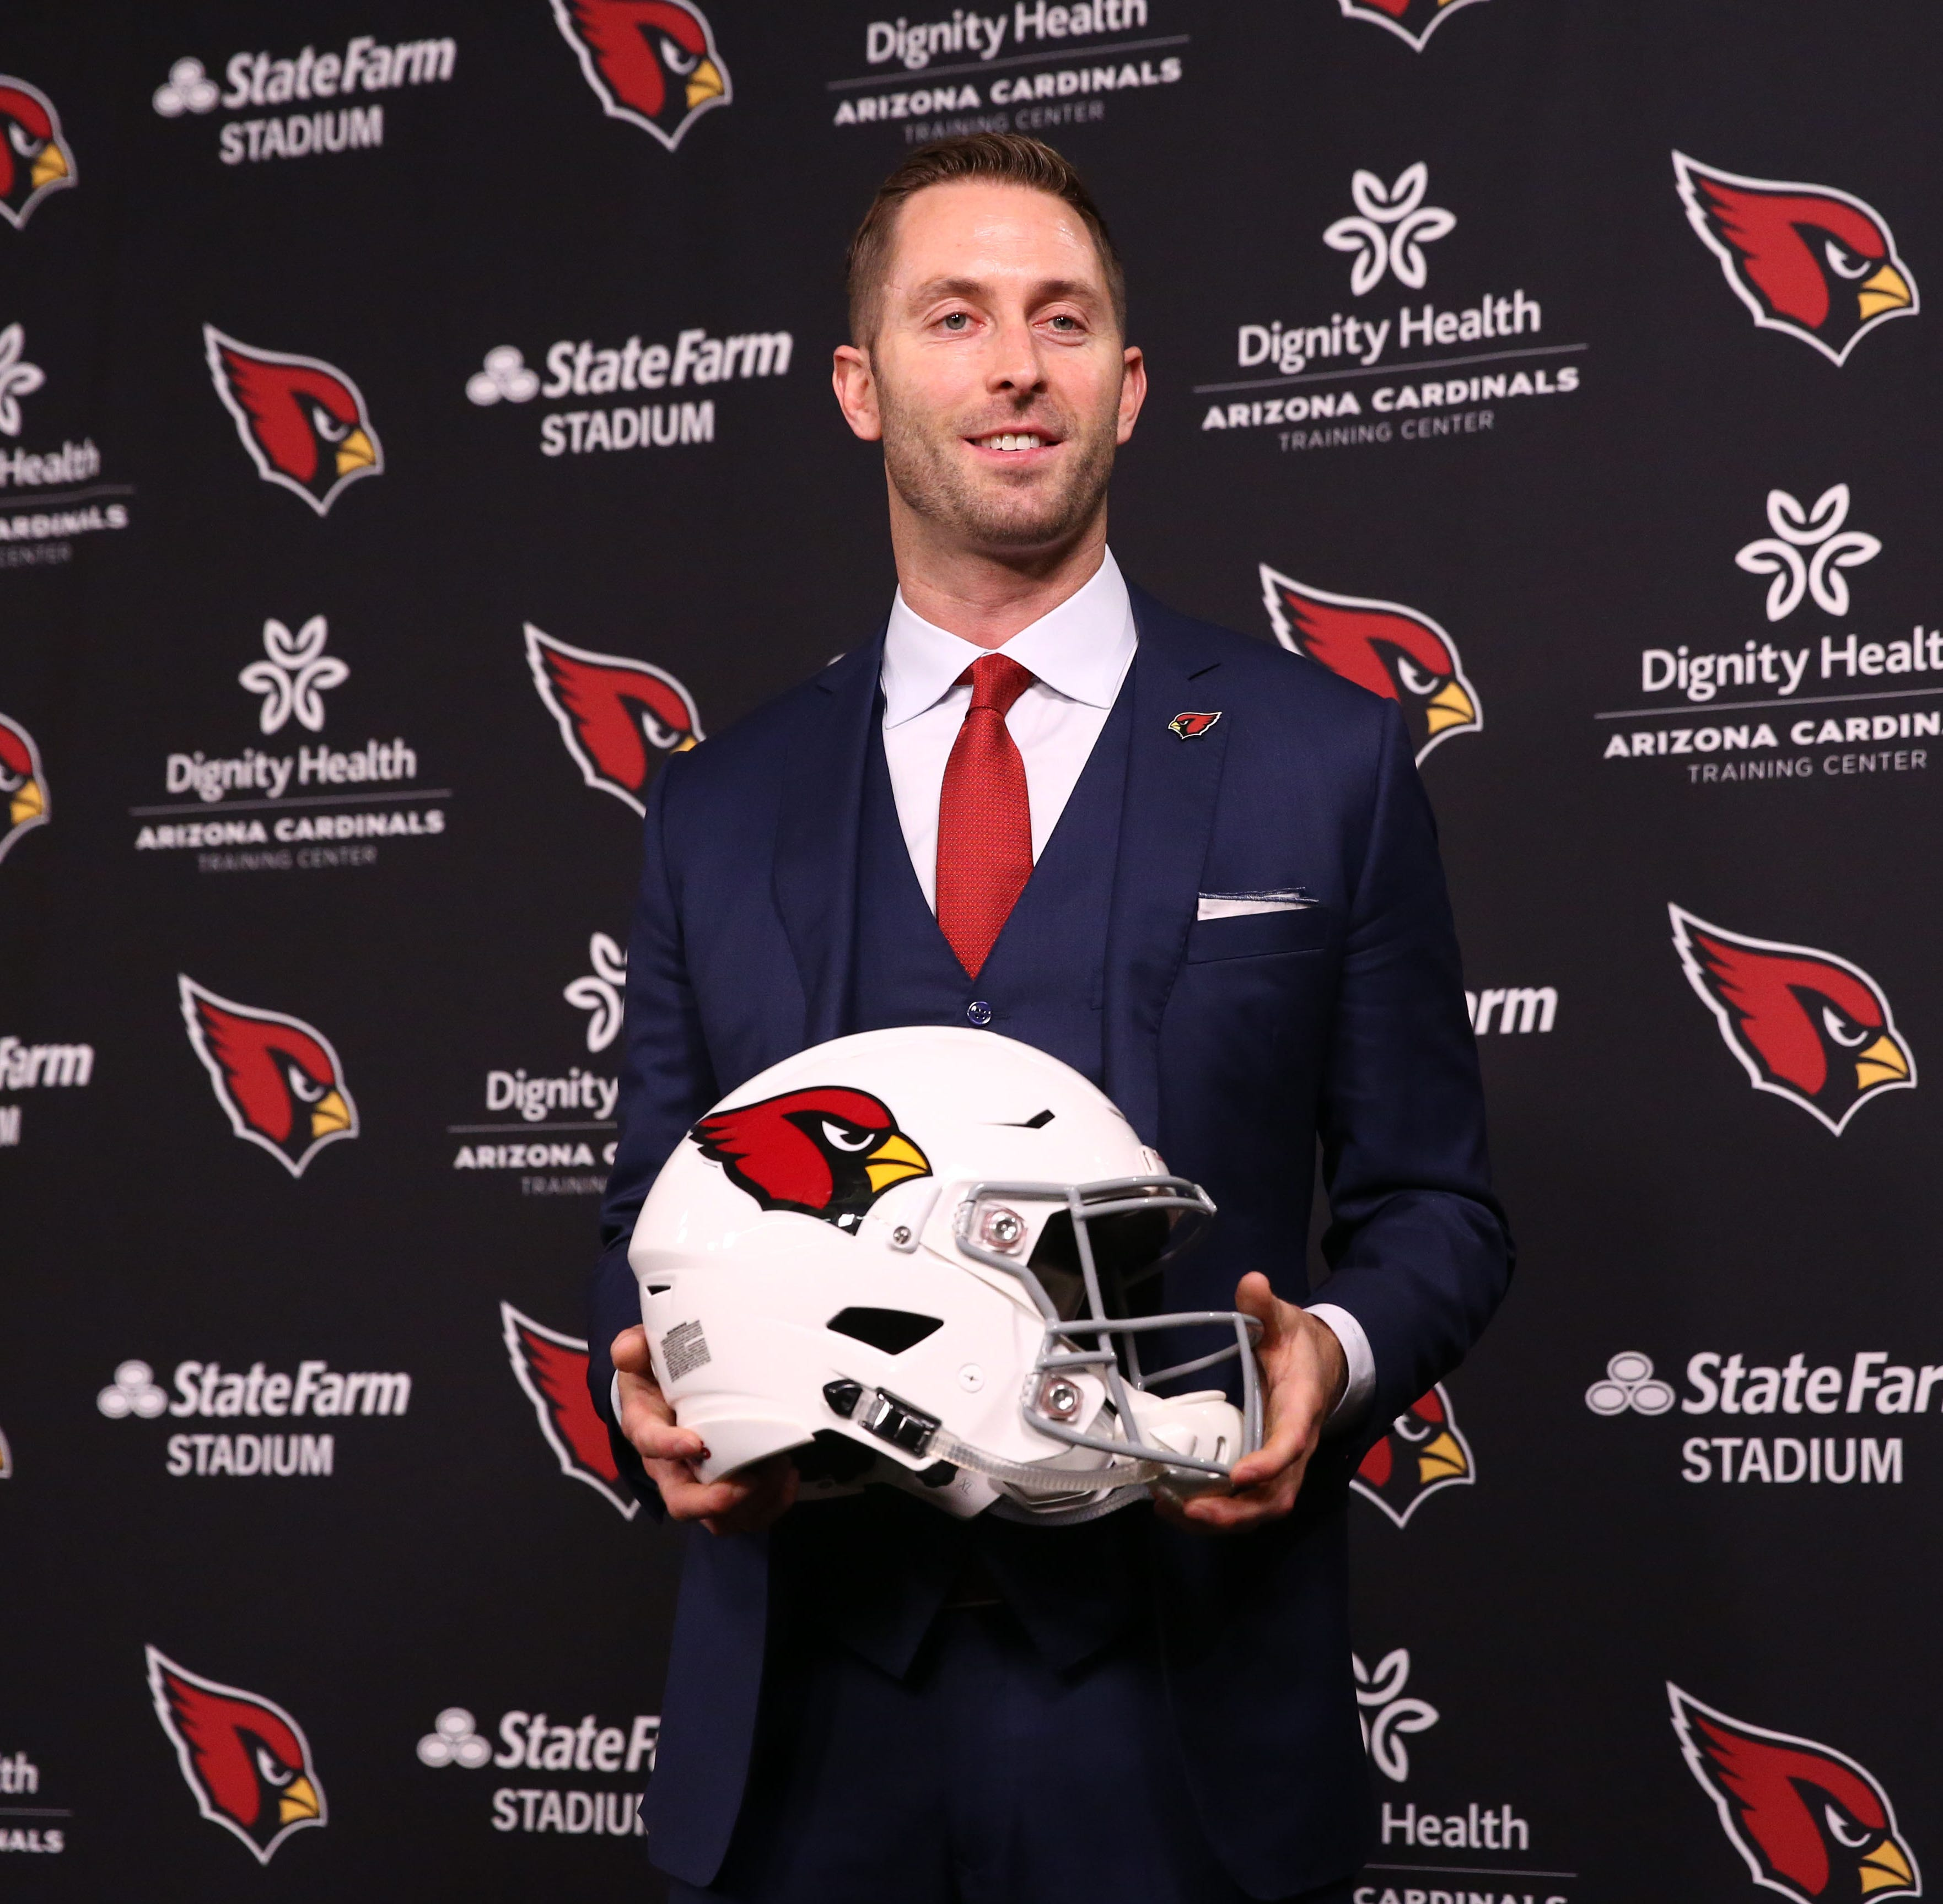 Arizona Cardinals coach Kliff Kingsbury pays $4.45M for Paradise Valley mansion